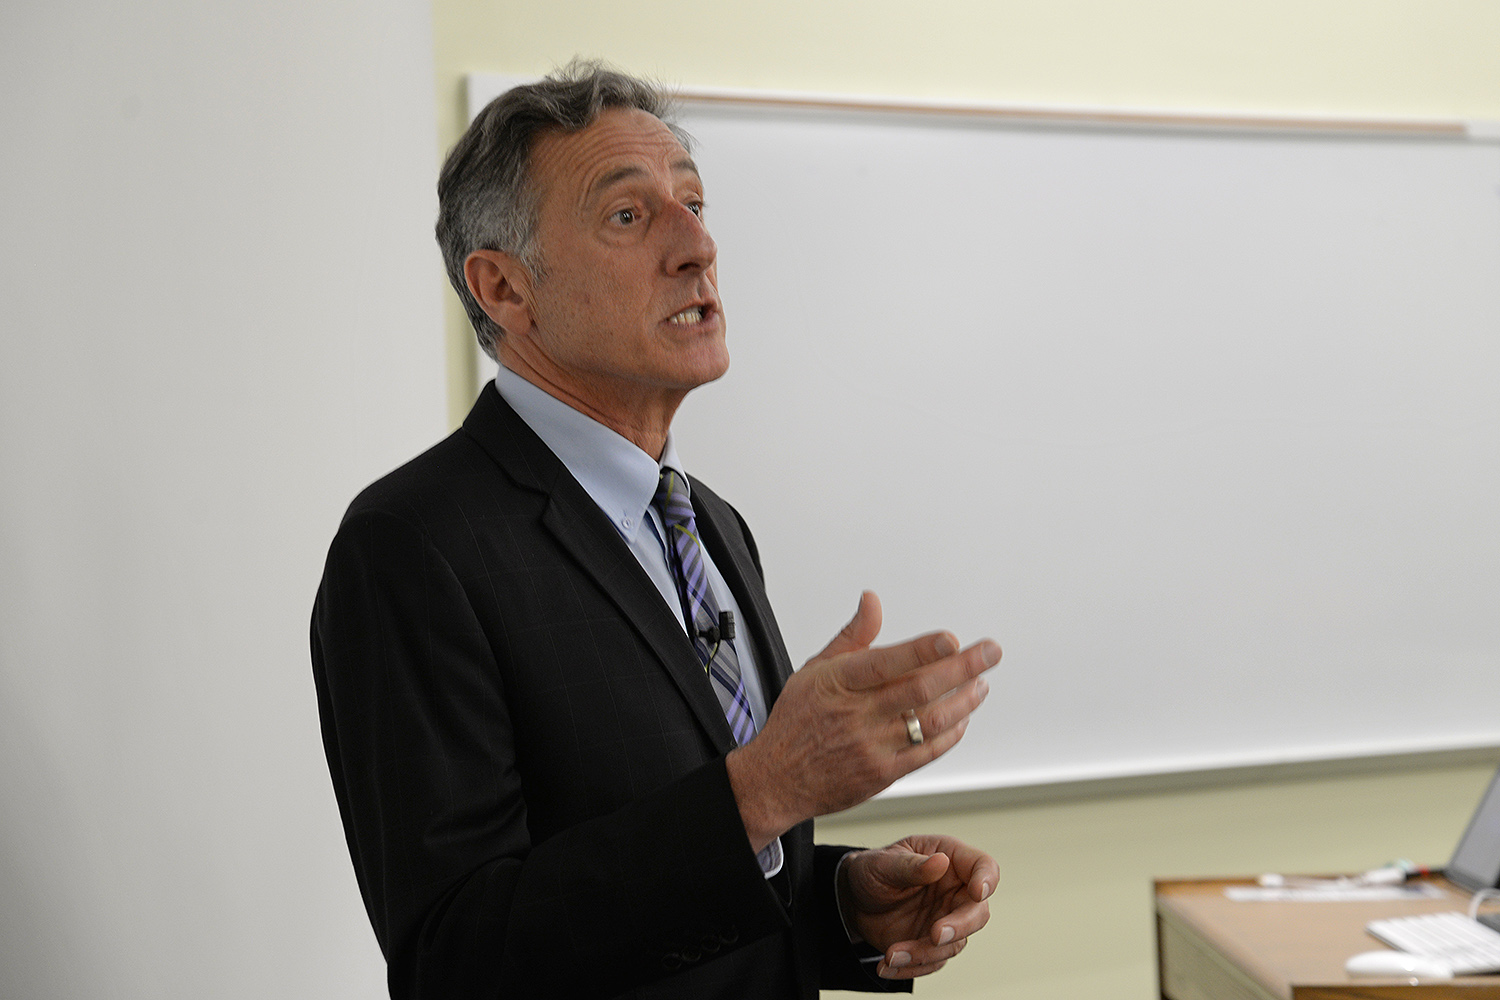 Peter Shumlin '79, Governor of Vermont 2011-2017, has been a pioneer in developing state-level policies to combat climate change, including the 2011 Comprehensive Energy Plan with a goal of achieving 90% renewable energy in Vermont by 2050.